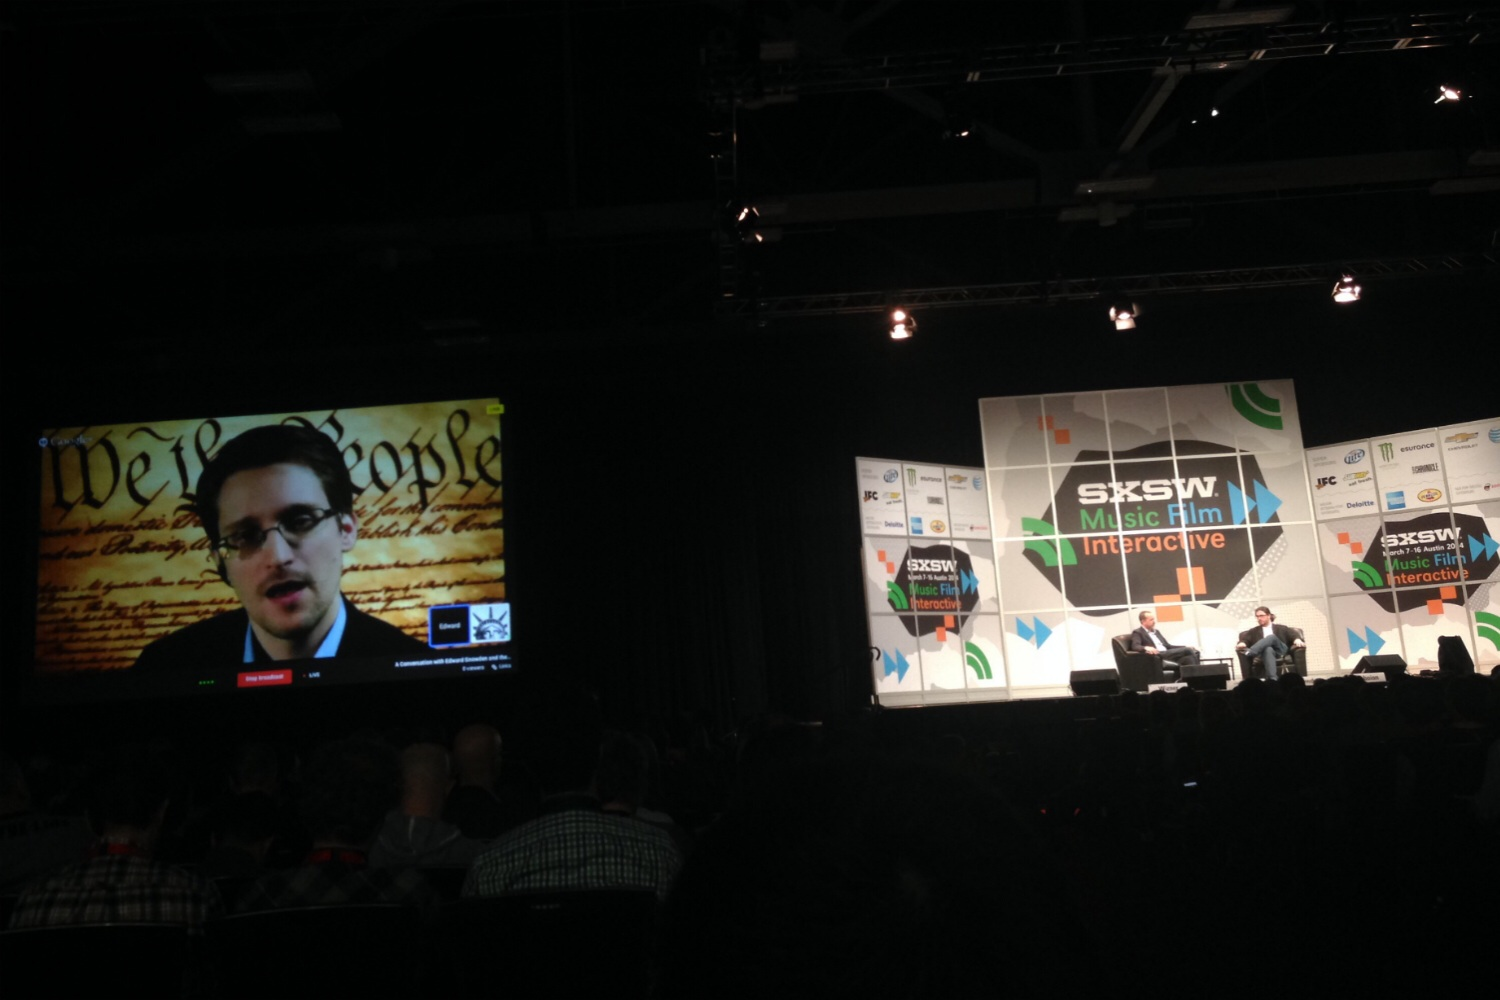 Edward Snowden speaks via video conference from Russia at SXSW Interactive in Austin, Tex. on March 10, 2014